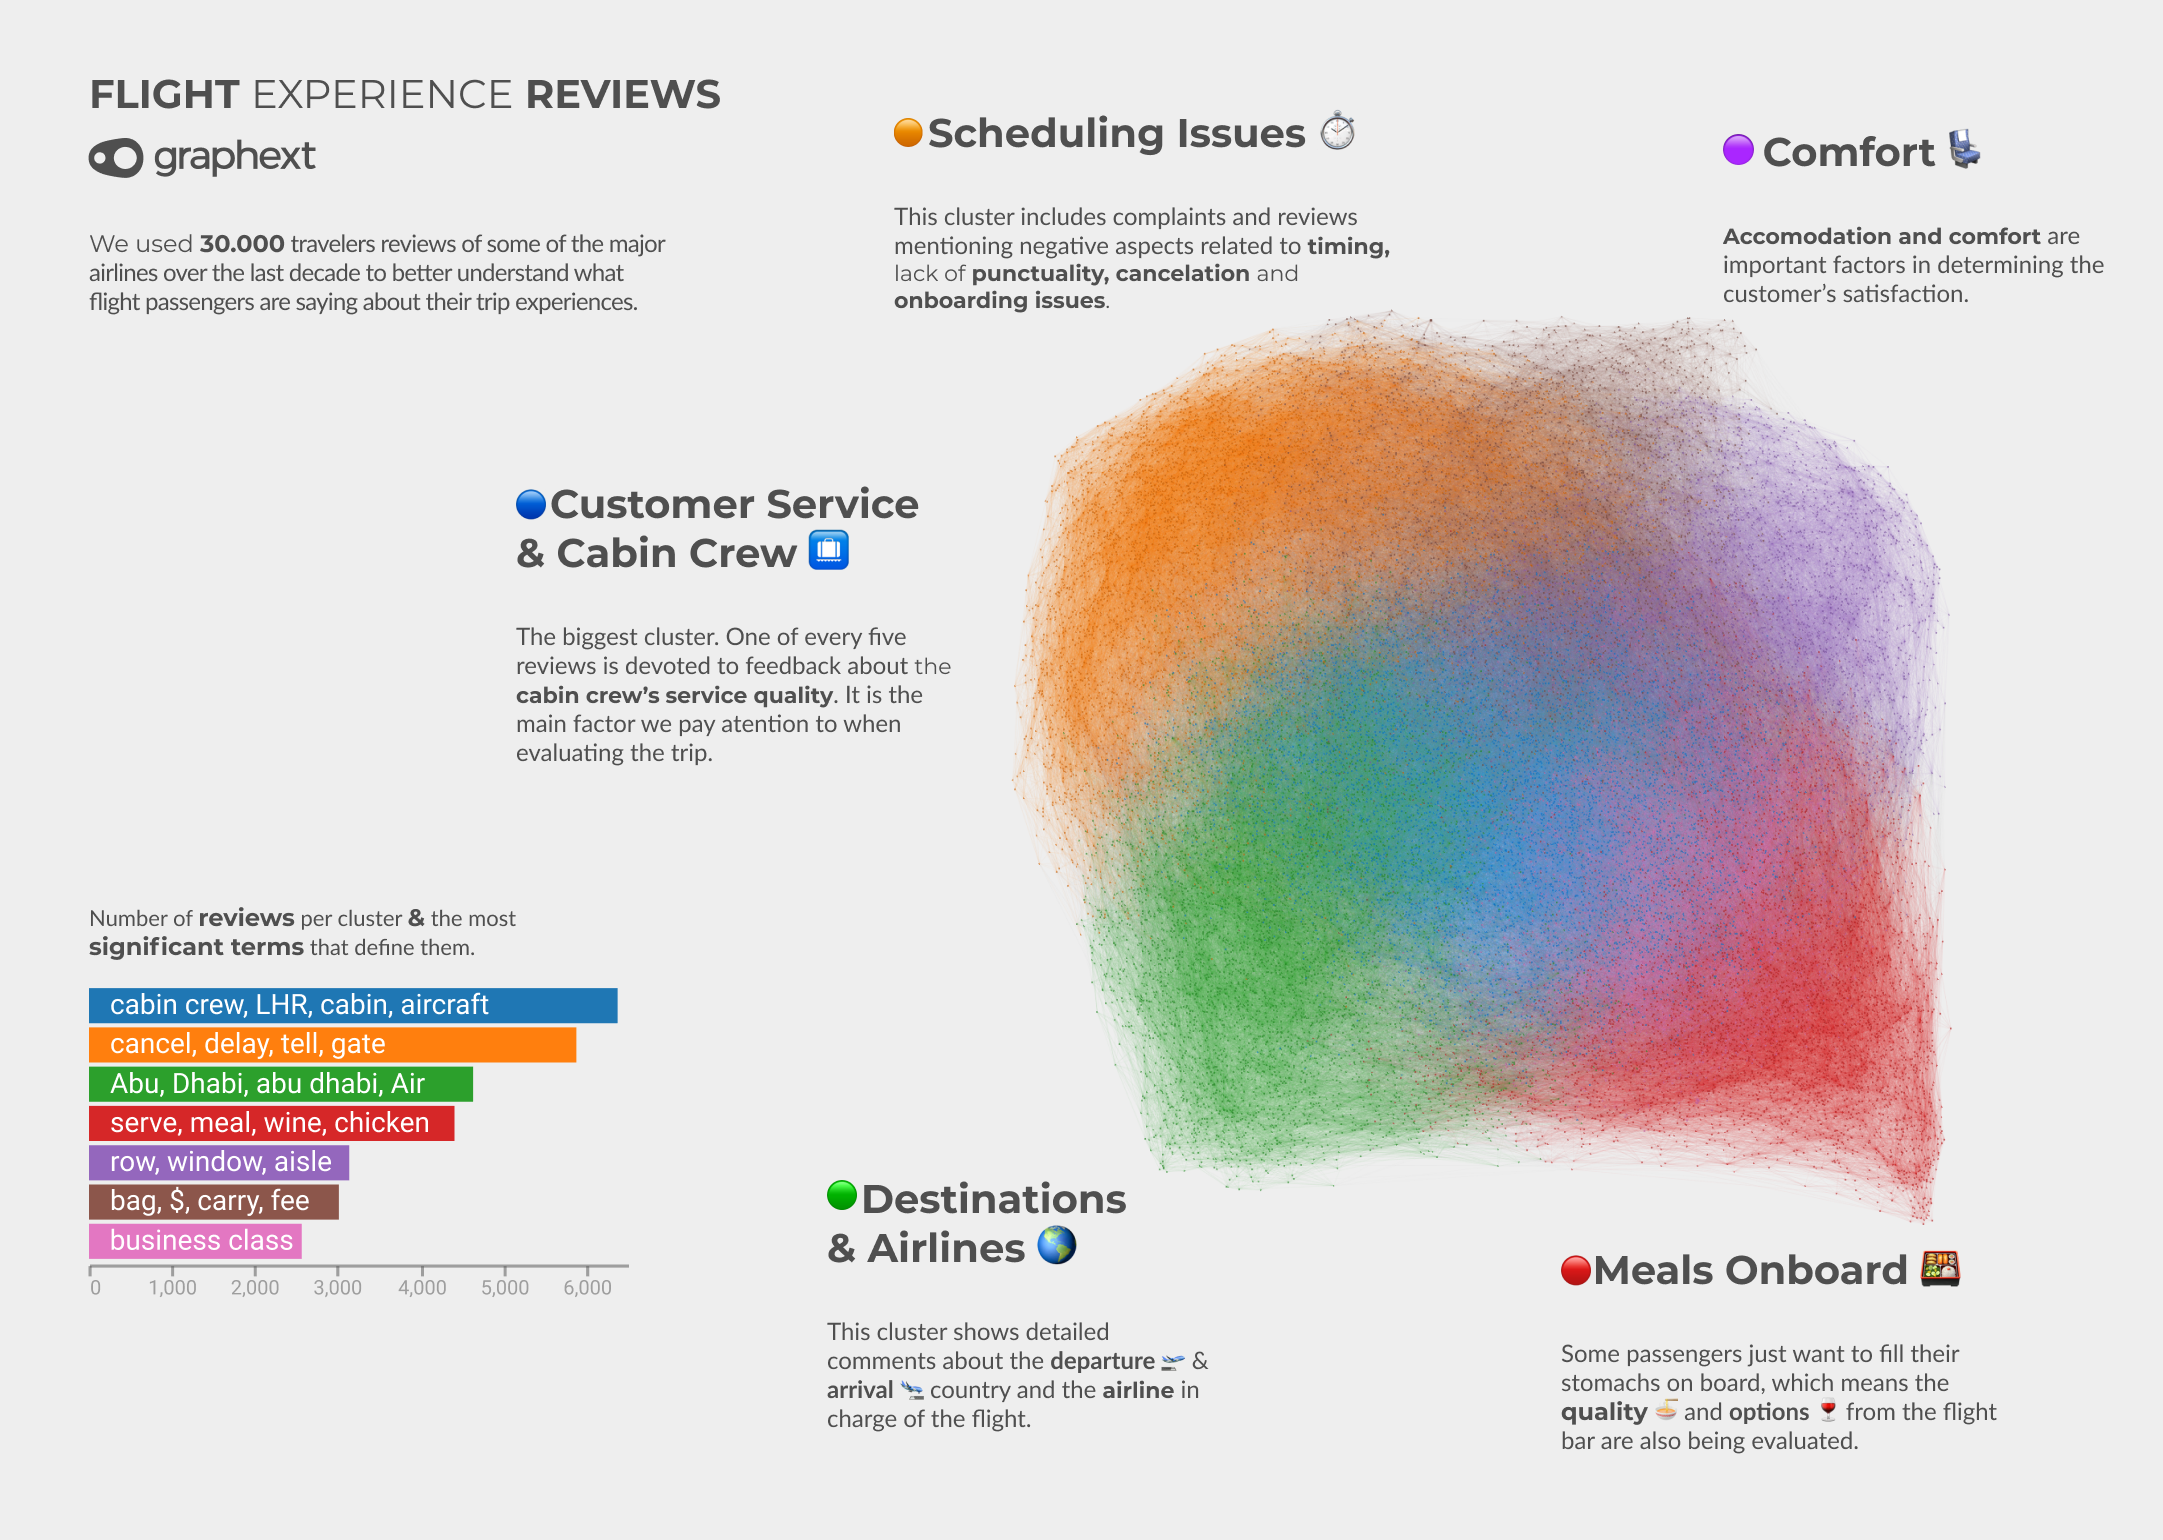 A network visualisation showing the main topics of airline reviews.